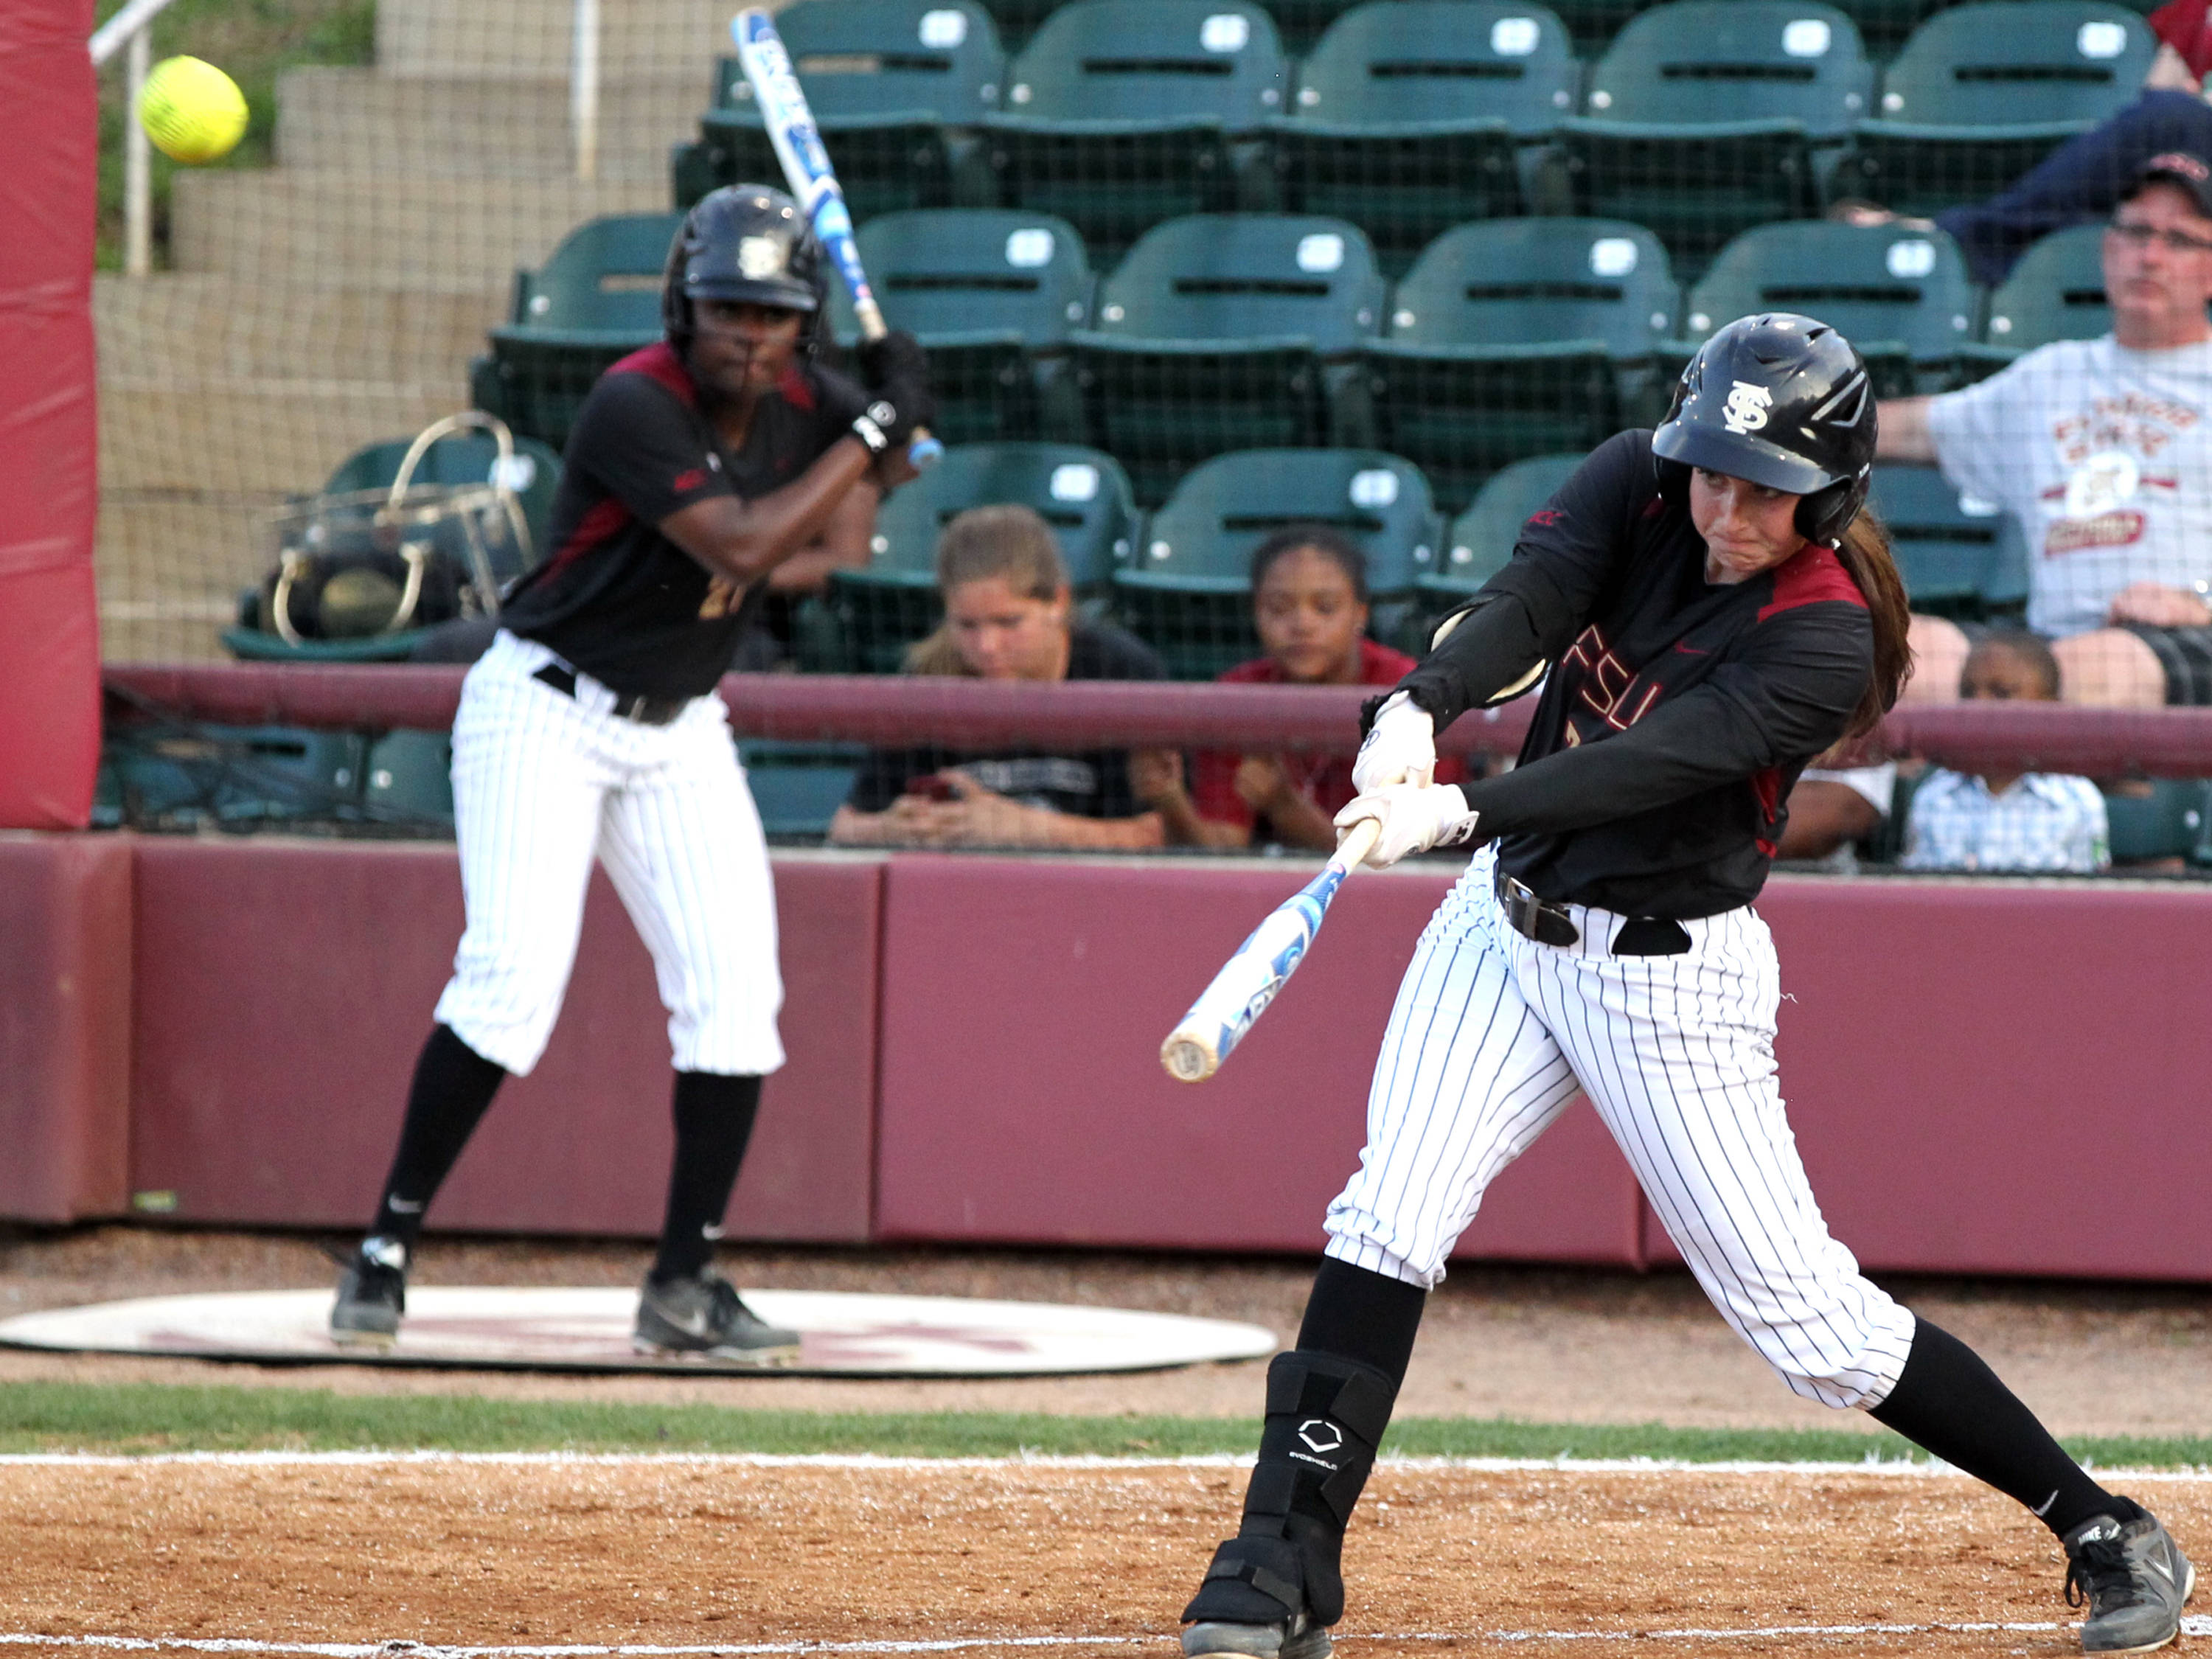 Maddie O' Brien launching her solo home run, FSU vs Virginia, 04/13/13 . (Photo by Steve Musco)